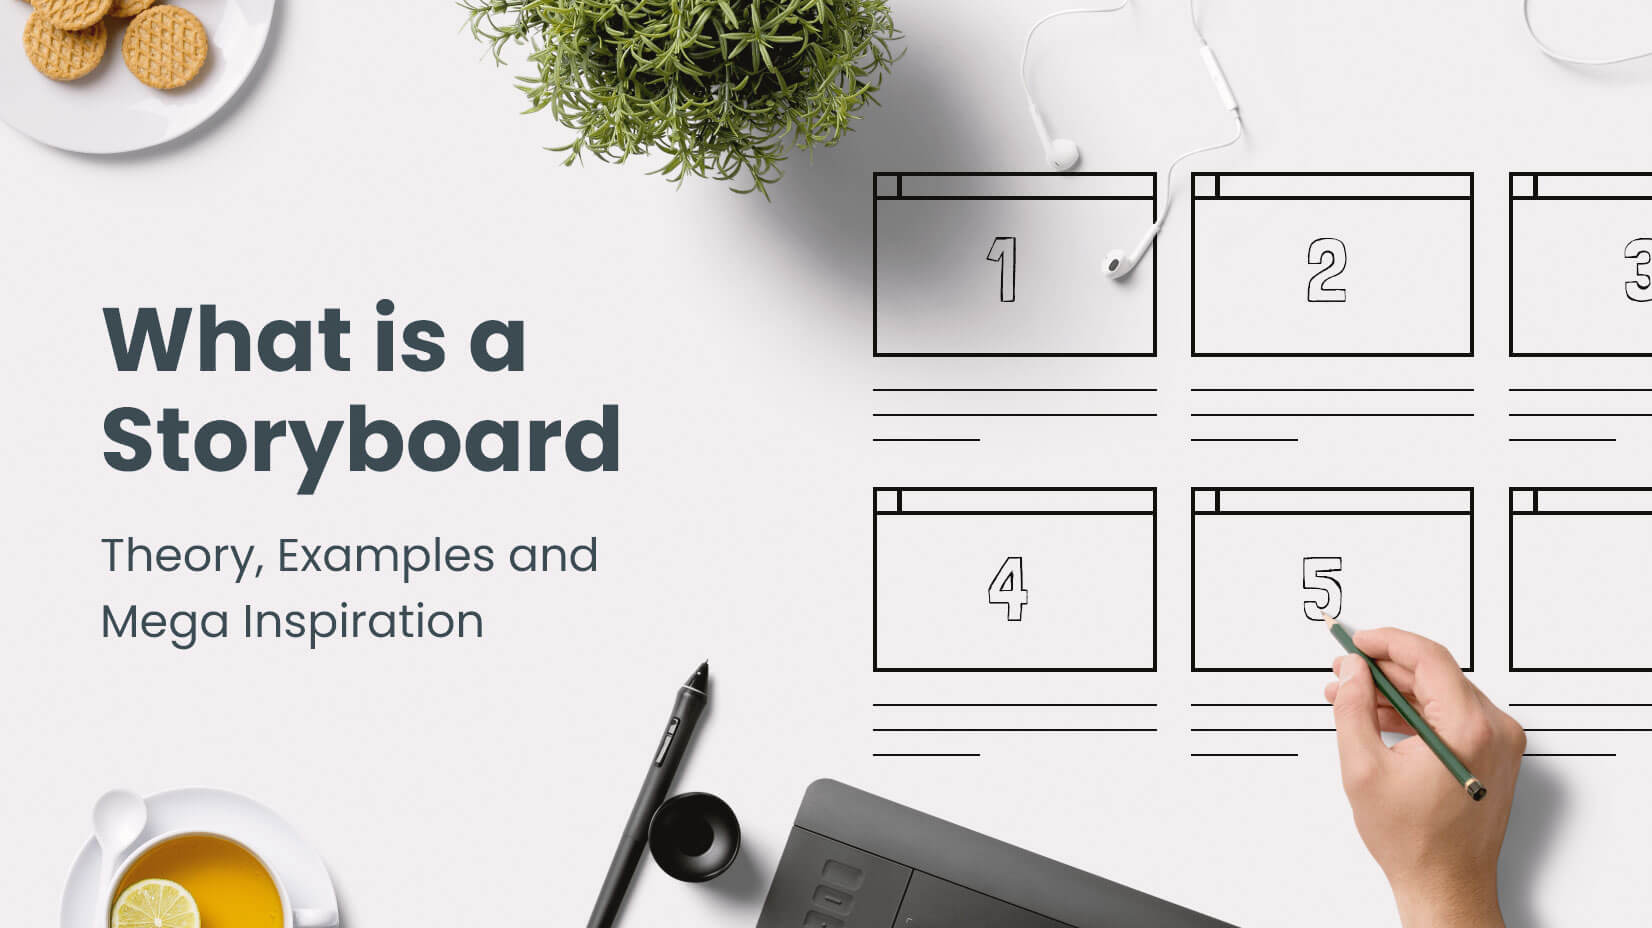 What is a Storyboard [Theory, Examples and Mega Inspiration]